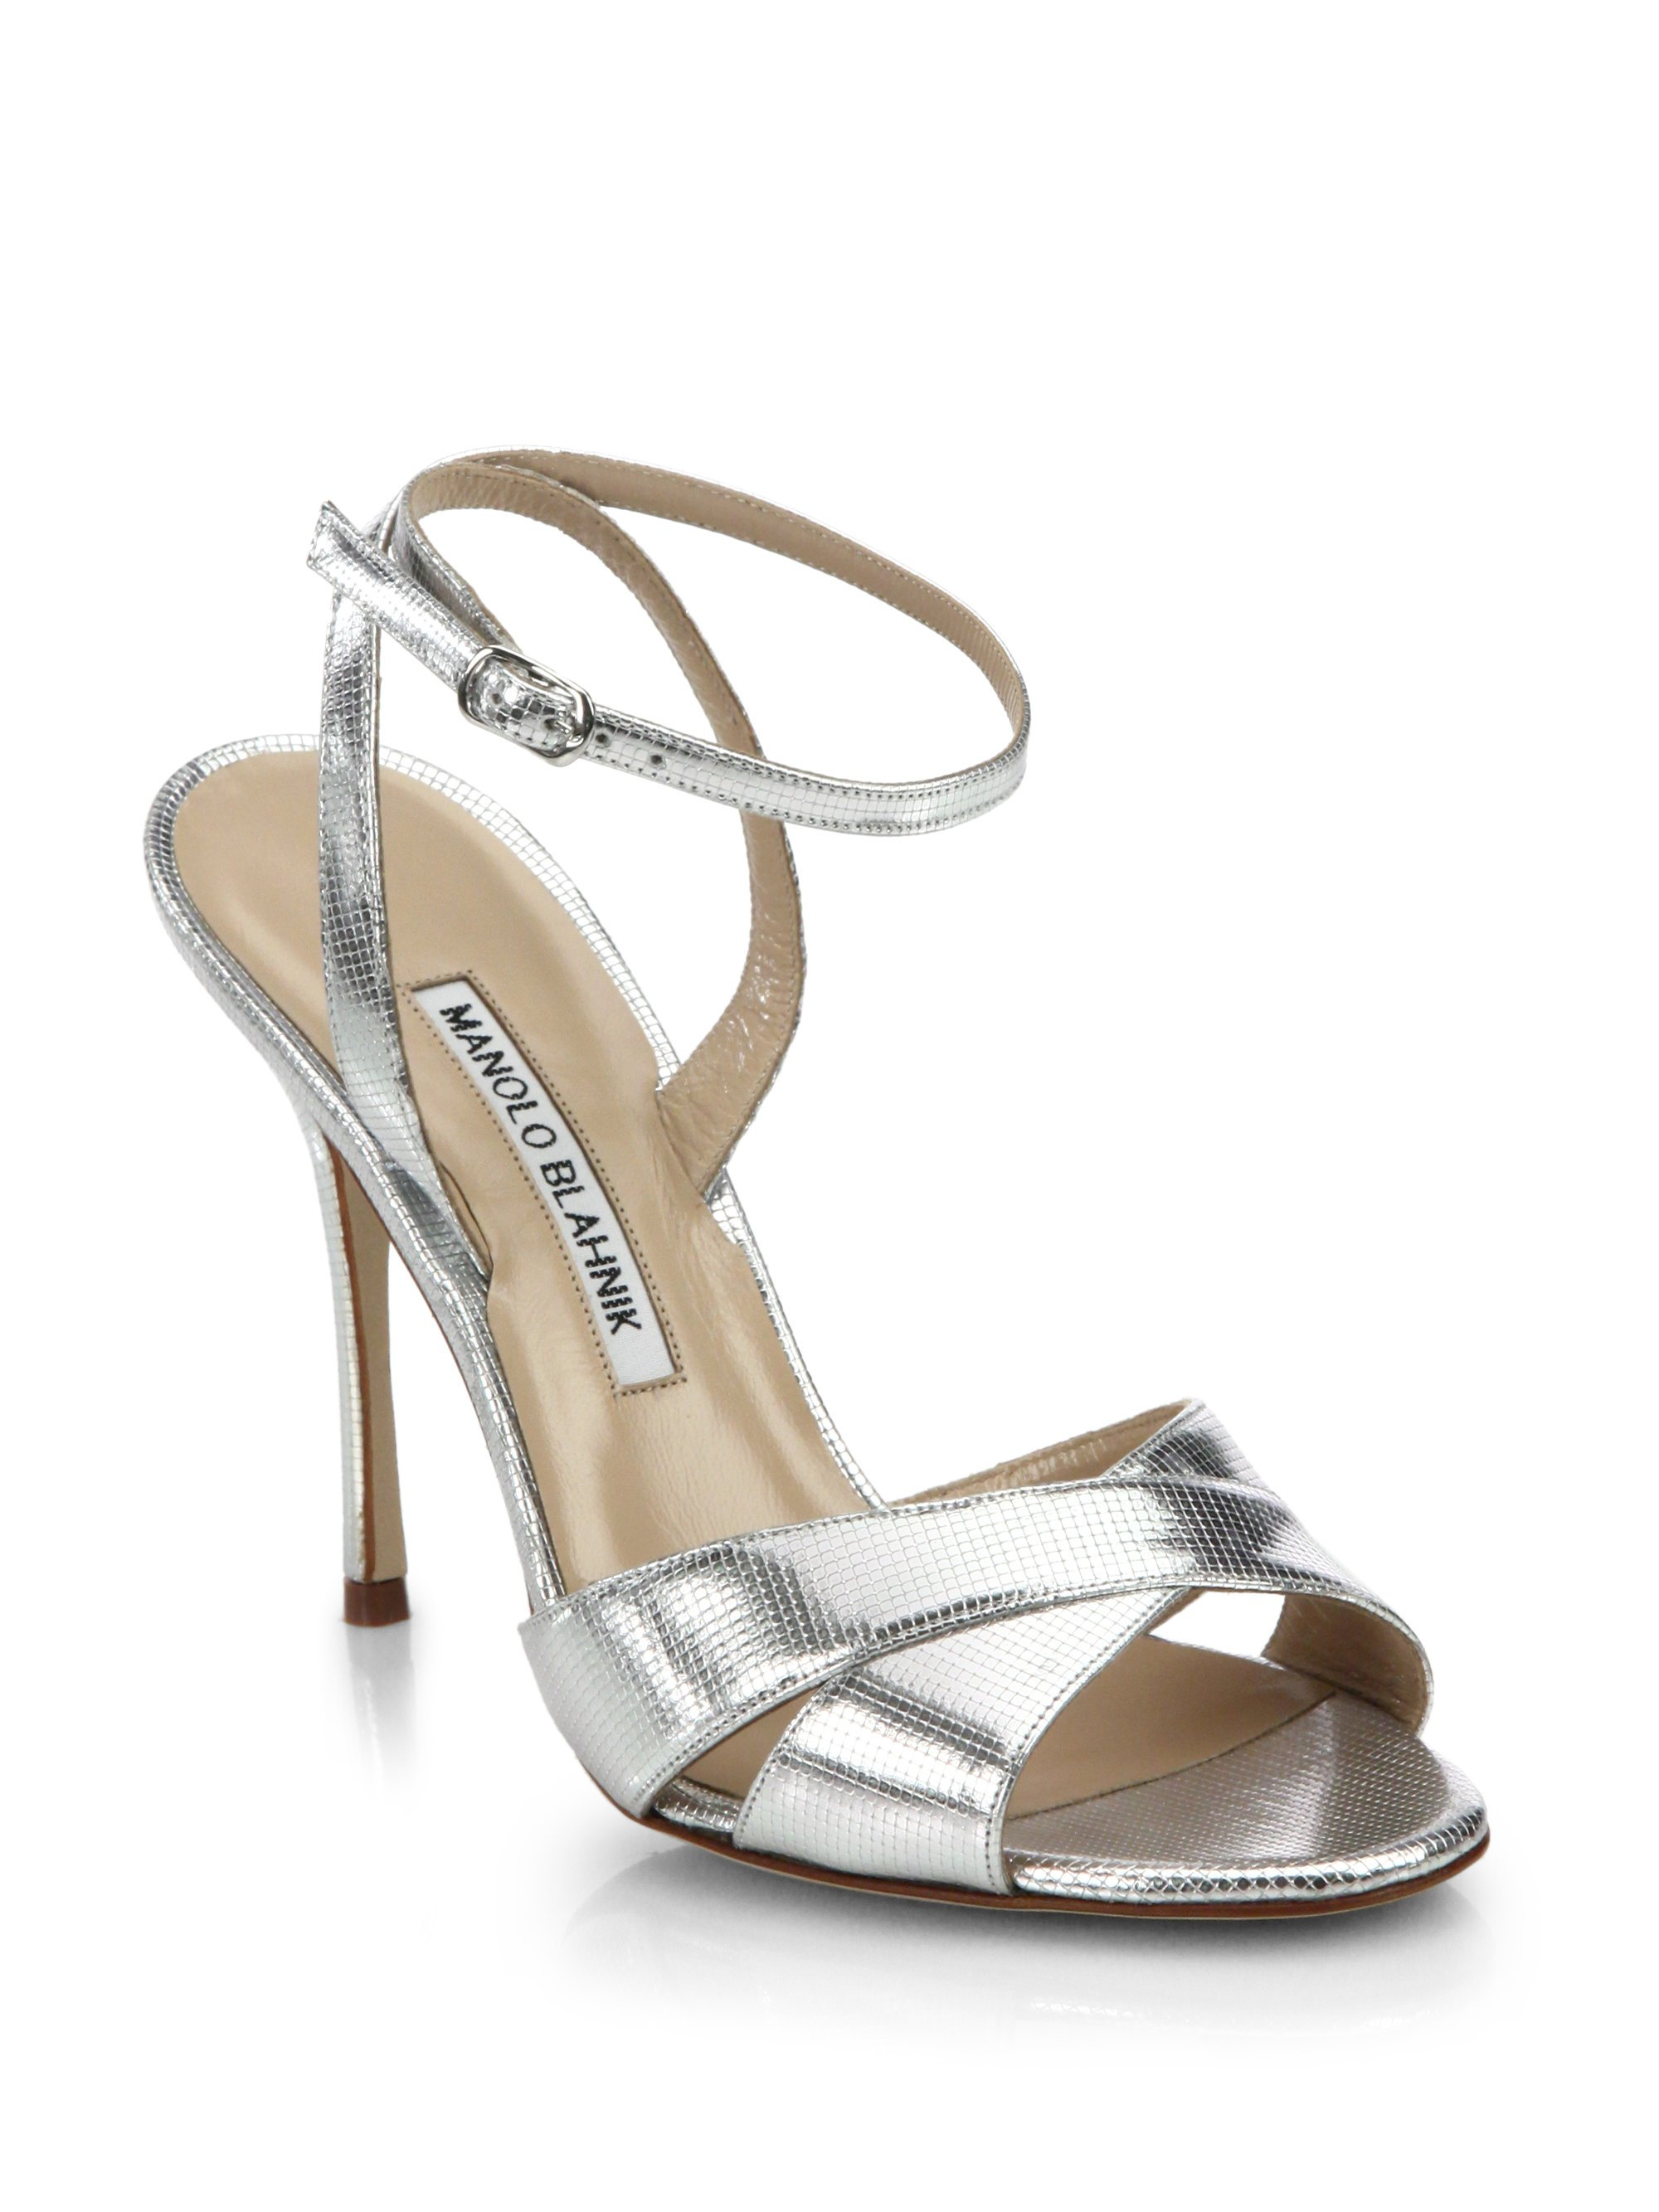 Manolo Blahnik Alligator Ankle Strap Sandals cheap price from china 4j5dt0